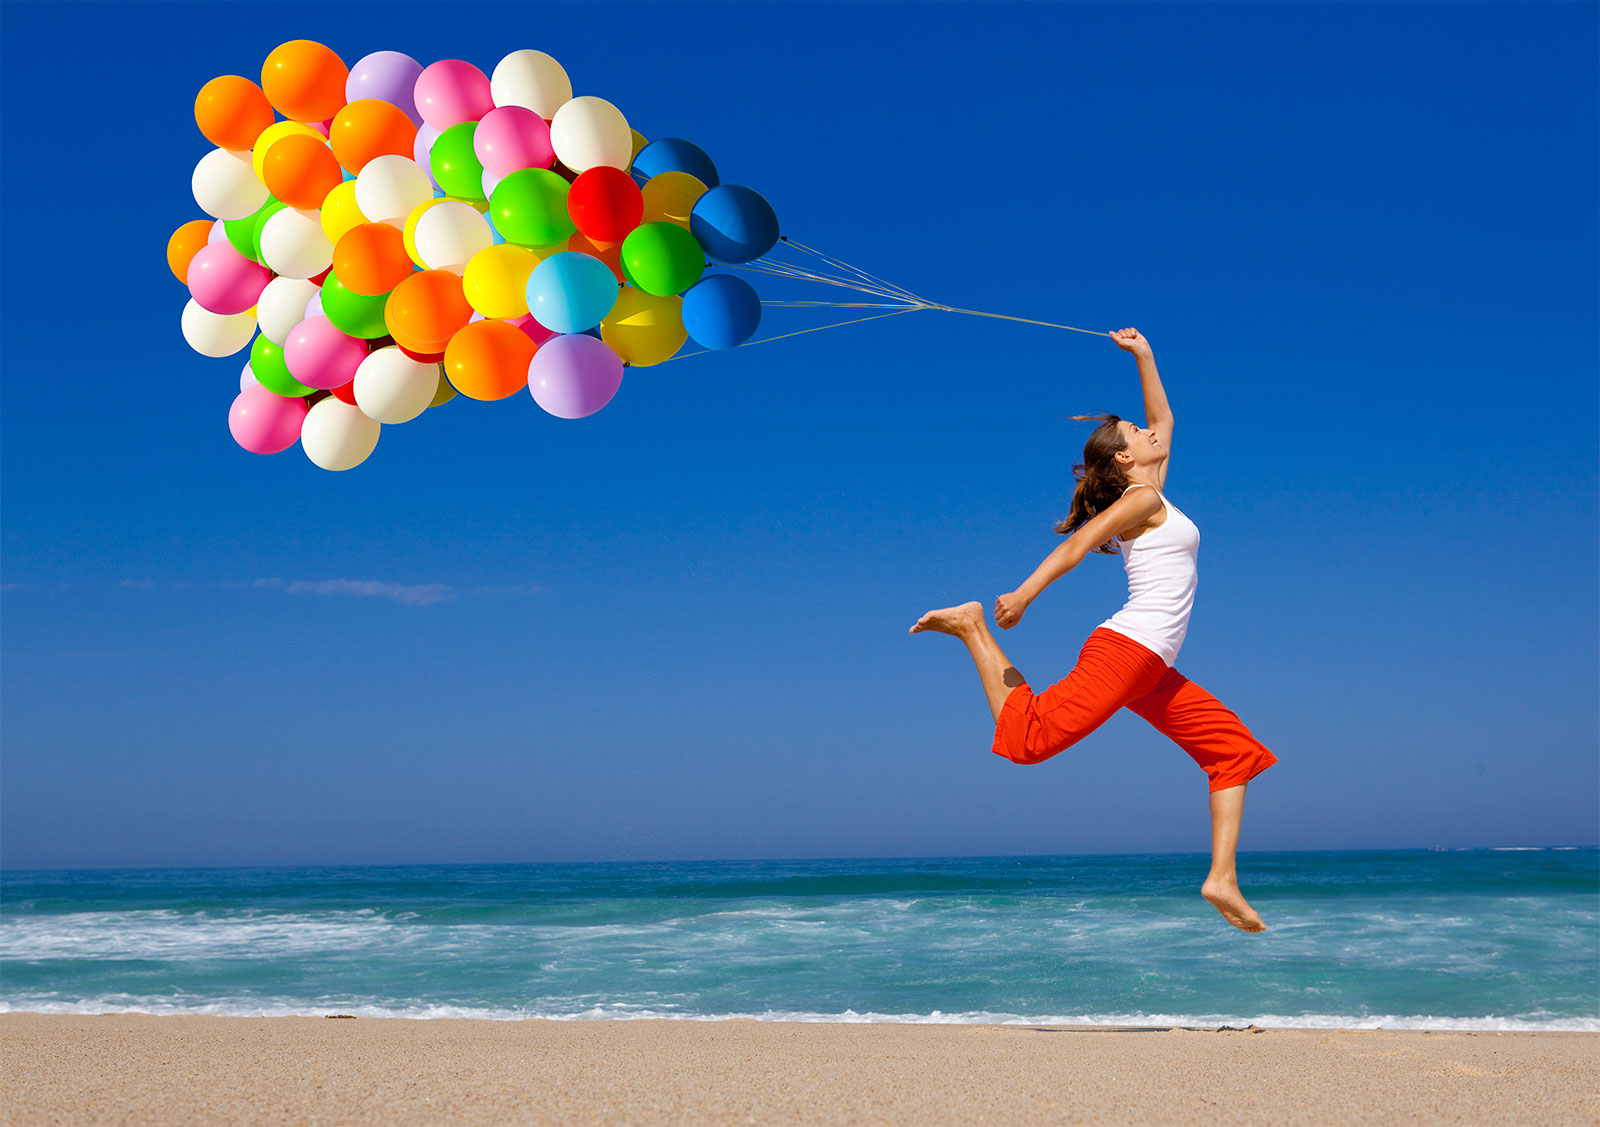 Lady with balloons on beach